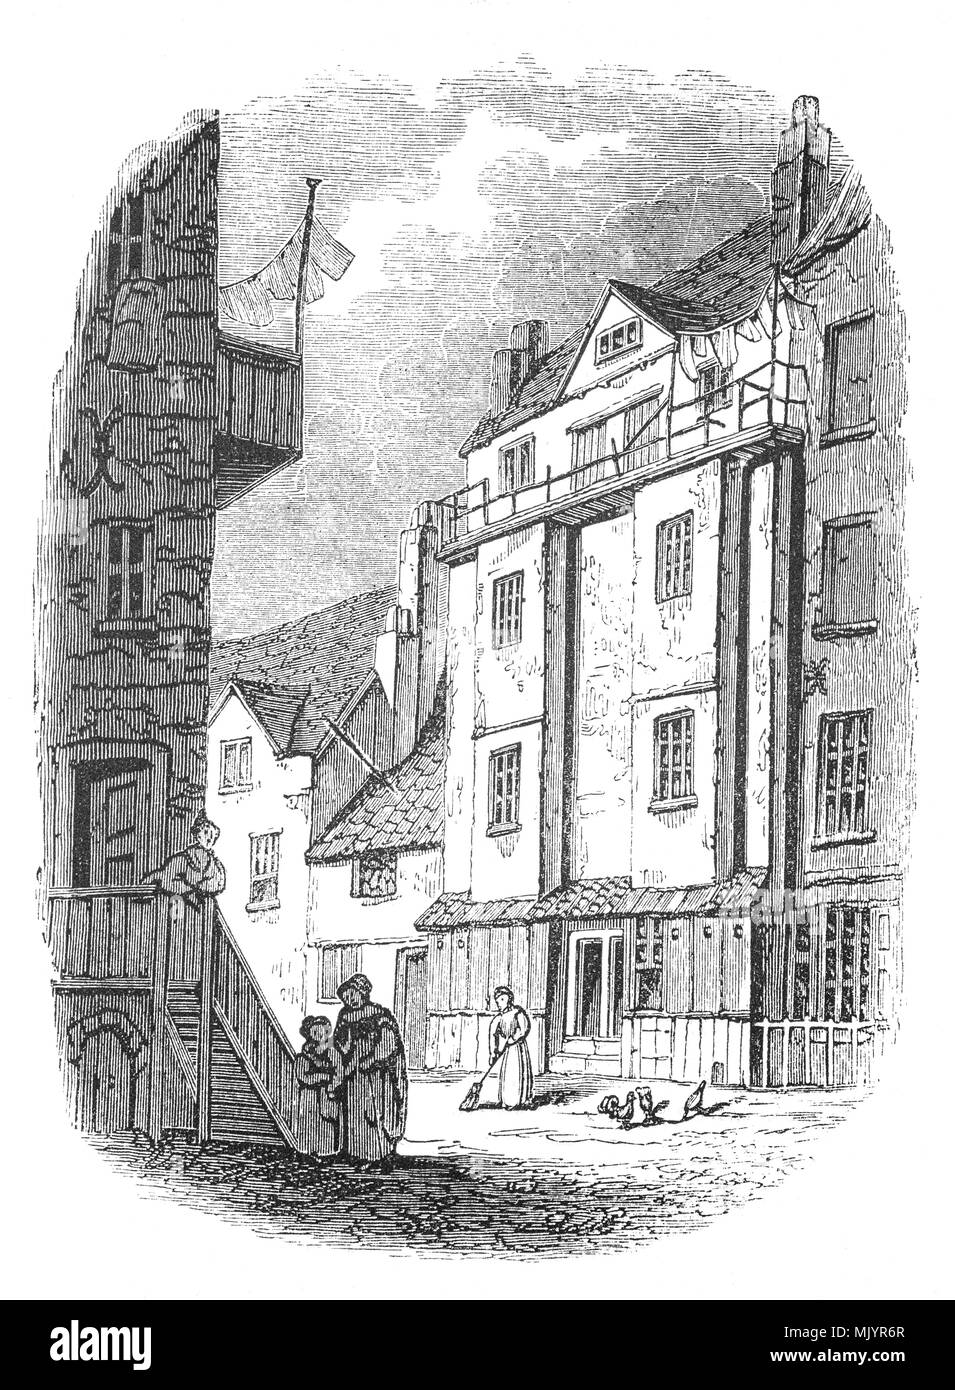 The Almonry of Westminster Abbey, where William Caxton (1412-1493) set up the first printing press in England in 1472; the house was demolished in 1845, as were the other buildings of the Almonry. Caxton was born in Kent and after schooling spent many years in Bruges and Holland, rising to an eminent position among his fellow merchants. He went to Cologne and embraced the new technique of printing and acquired a press in order to publish his translations of various French books. Bringing his press to England he rented premises at the sign of the Red Pale in Westminster. Stock Photo